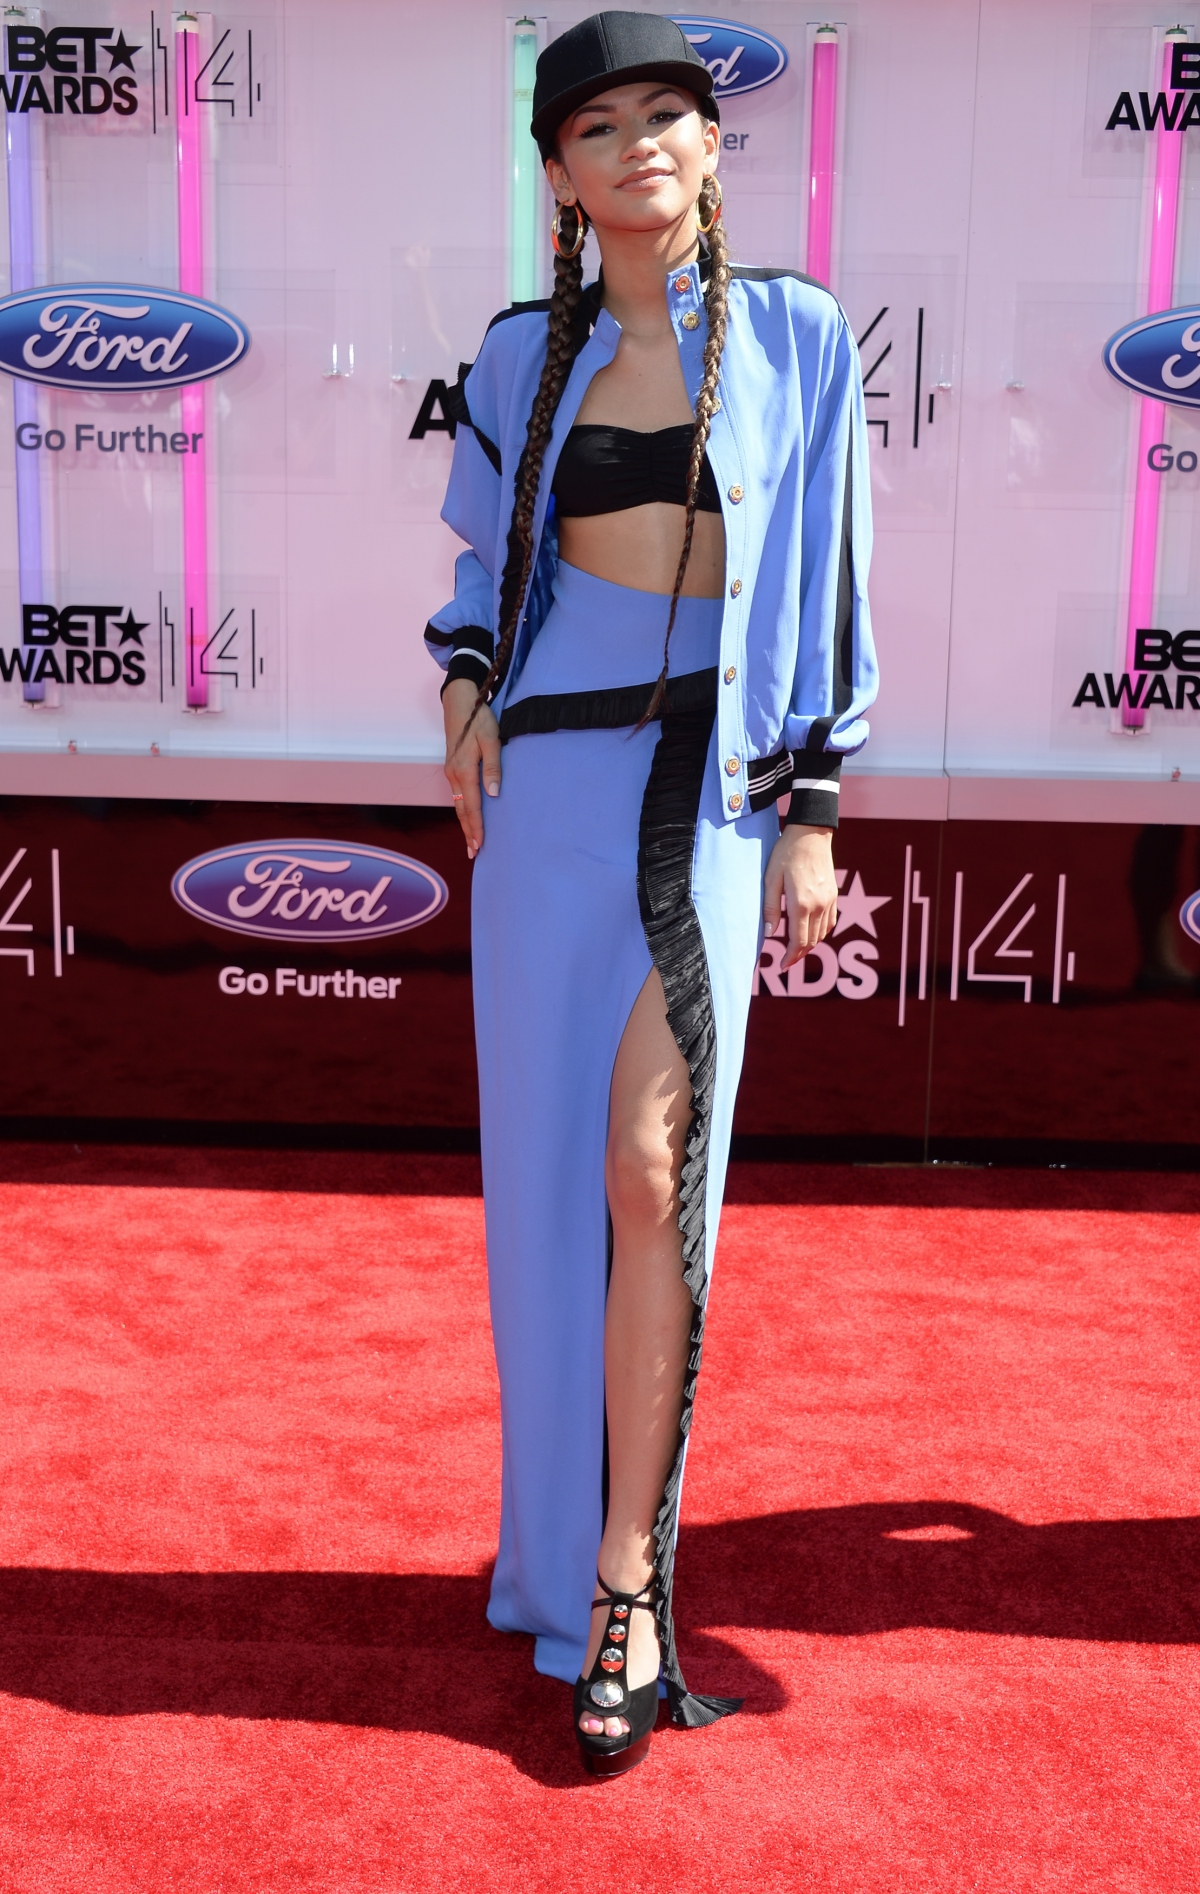 Zendaya arrives at the 2014 BET Awards in Los Angeles, California June 29, 2014.